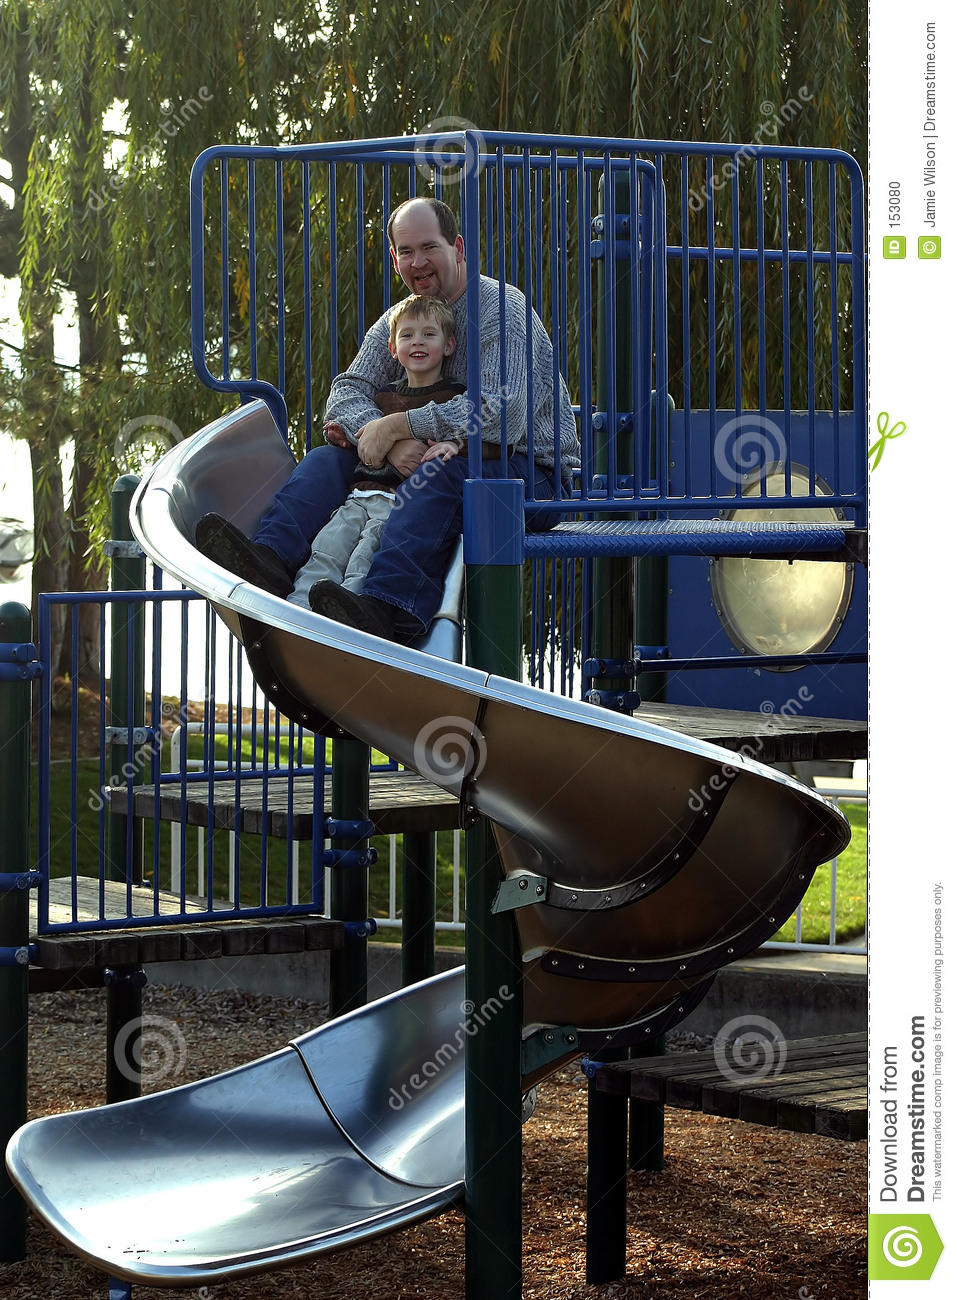 Father and Son on the Slide